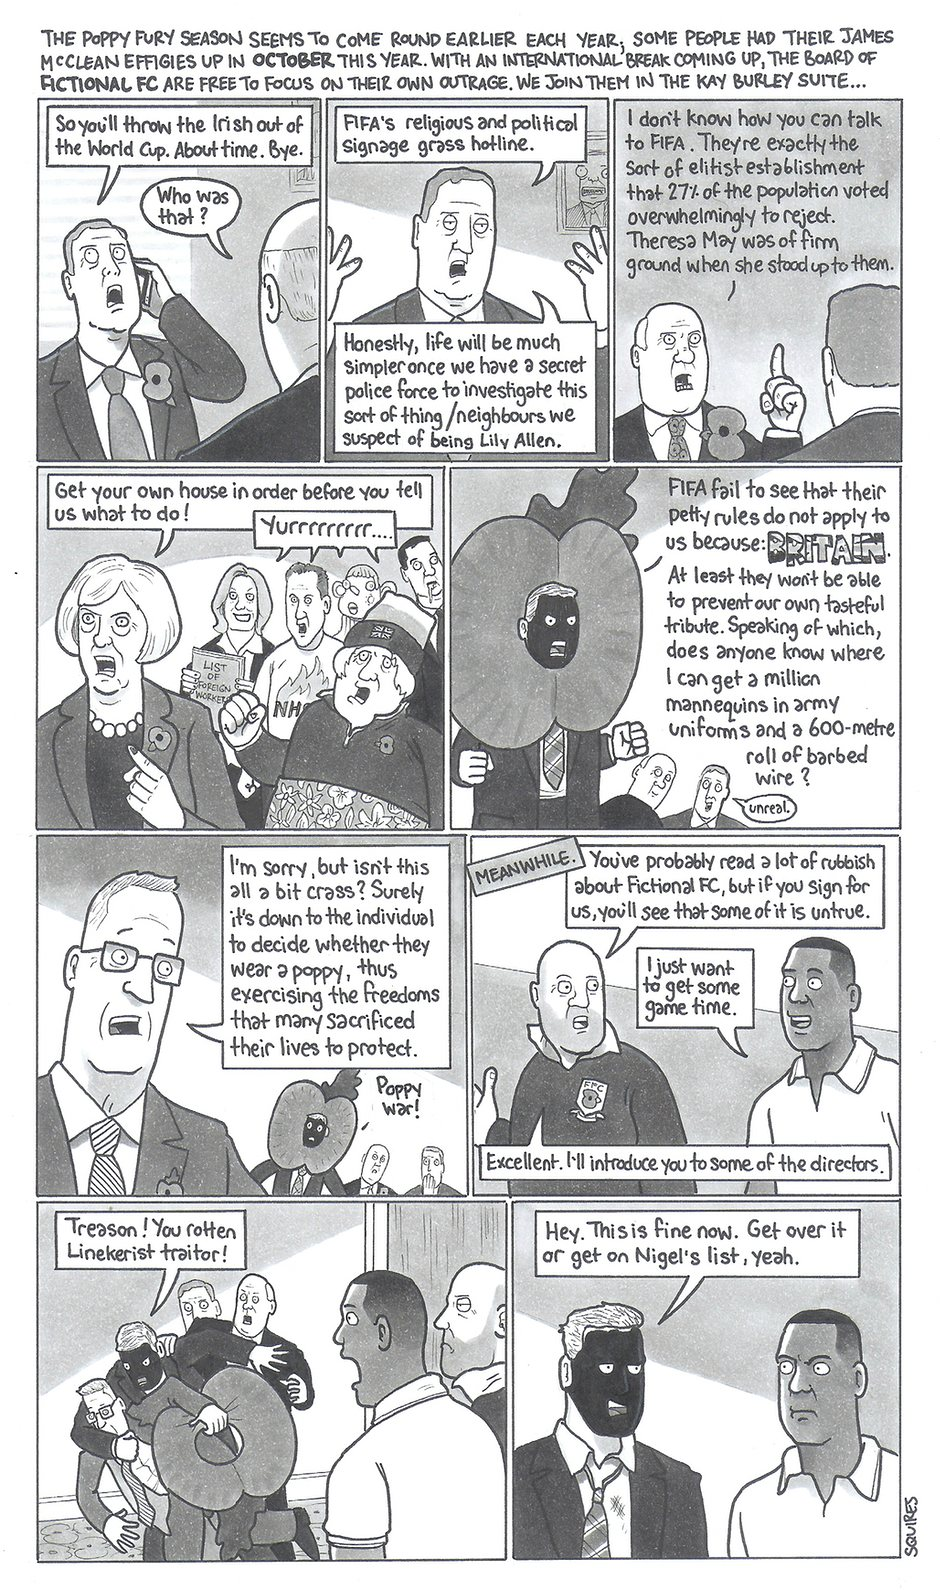 poppy-gate-david-squires.jpg